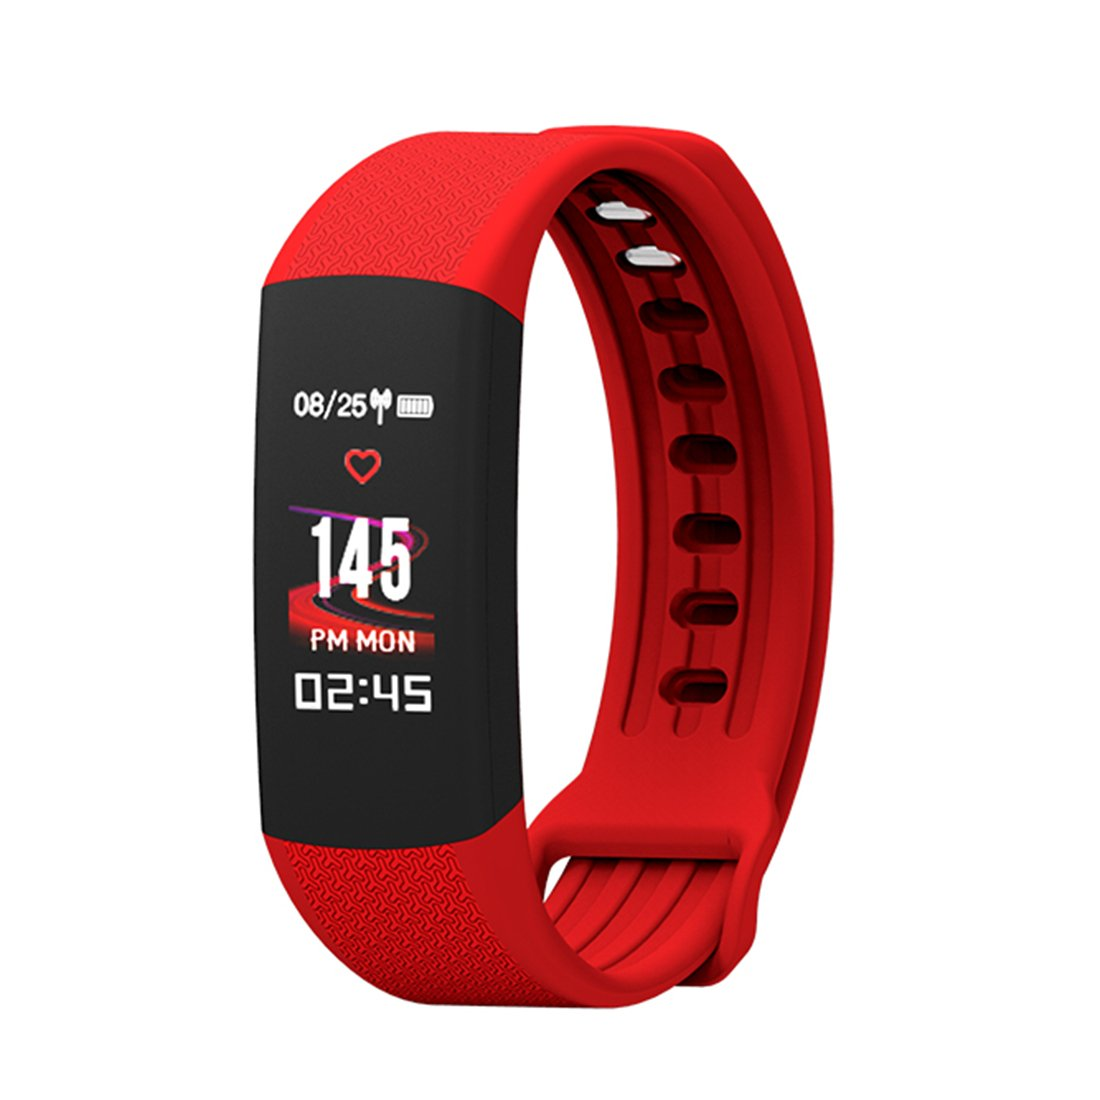 HDWY Smart Bracelet With Color Screen Step Counter Calorie Sleep Monitor Distance Sport Watch Walking Running App For Woman And Man (Quantity: 2) (Color : Red)